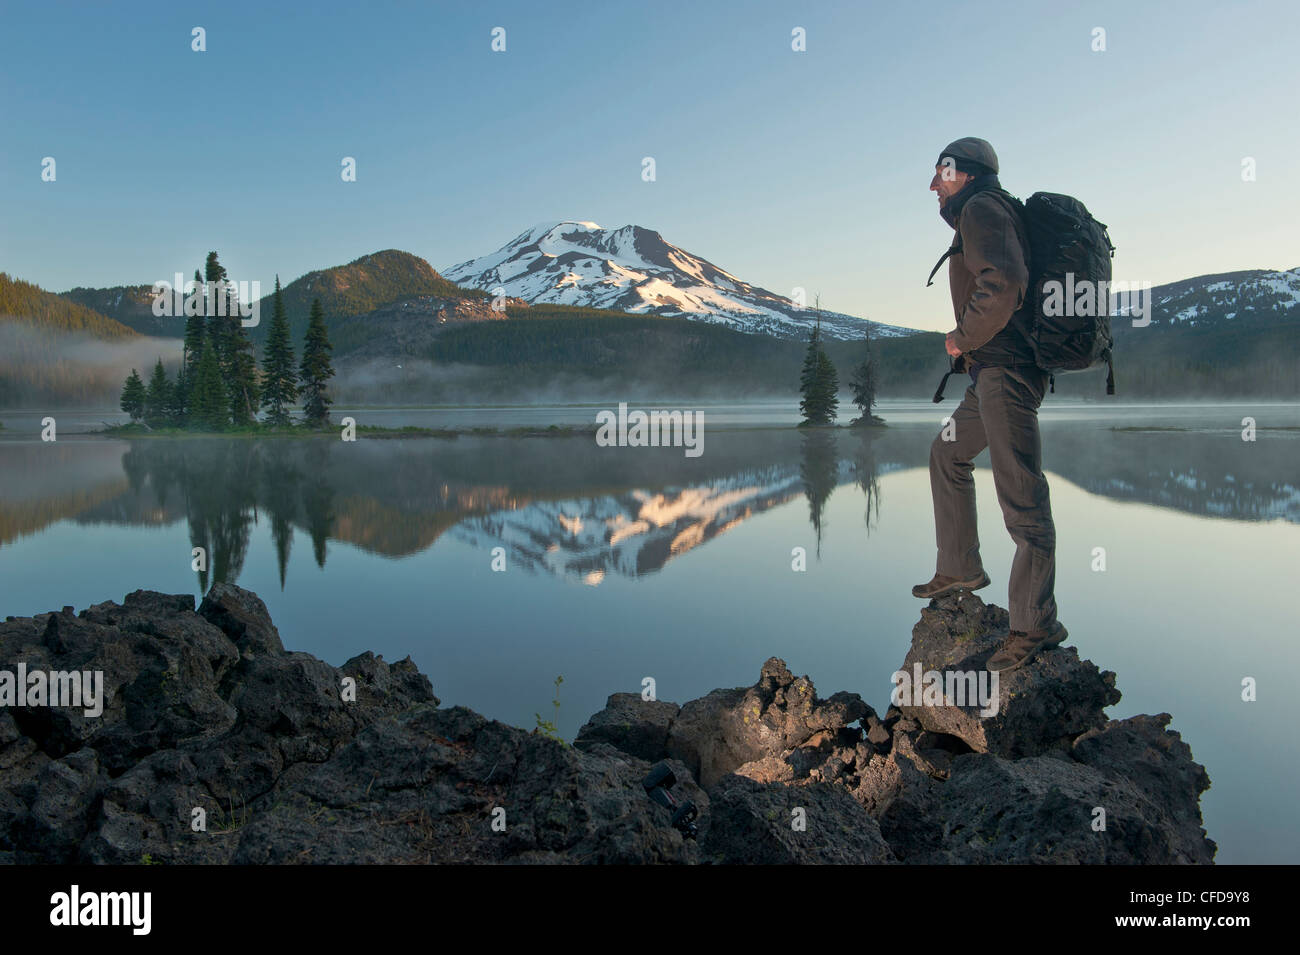 Man with backpack hiking, Sparks Lake in the morning. Stock Photo